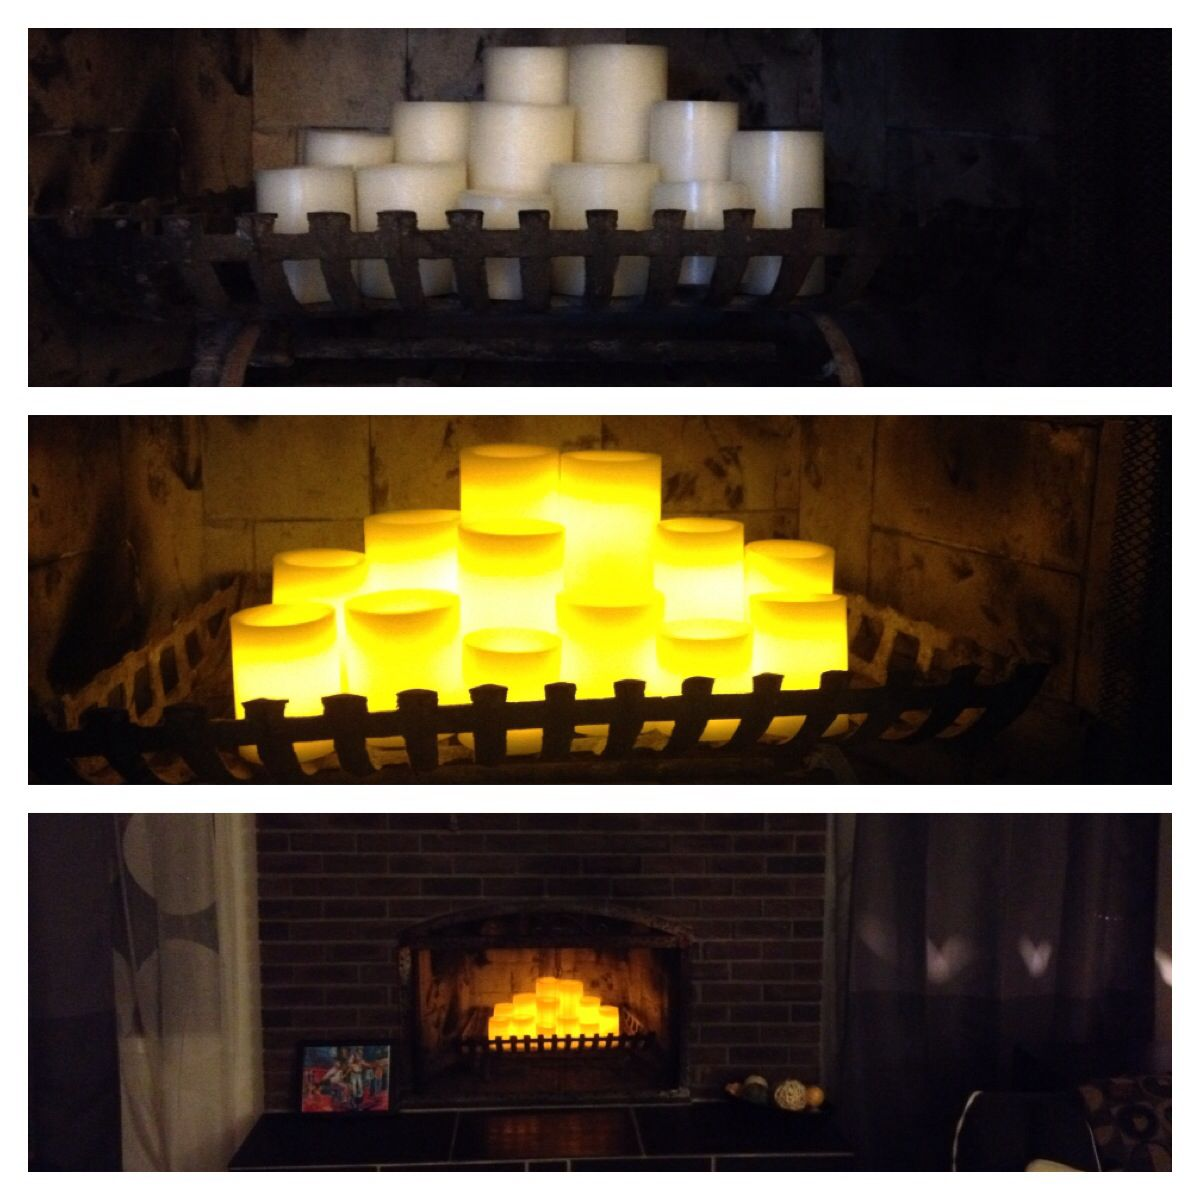 have an old fireplace that doesn 039 t work flameless led candles with a 5 or 10 hour timer set them once and they will come on at the same time everyday